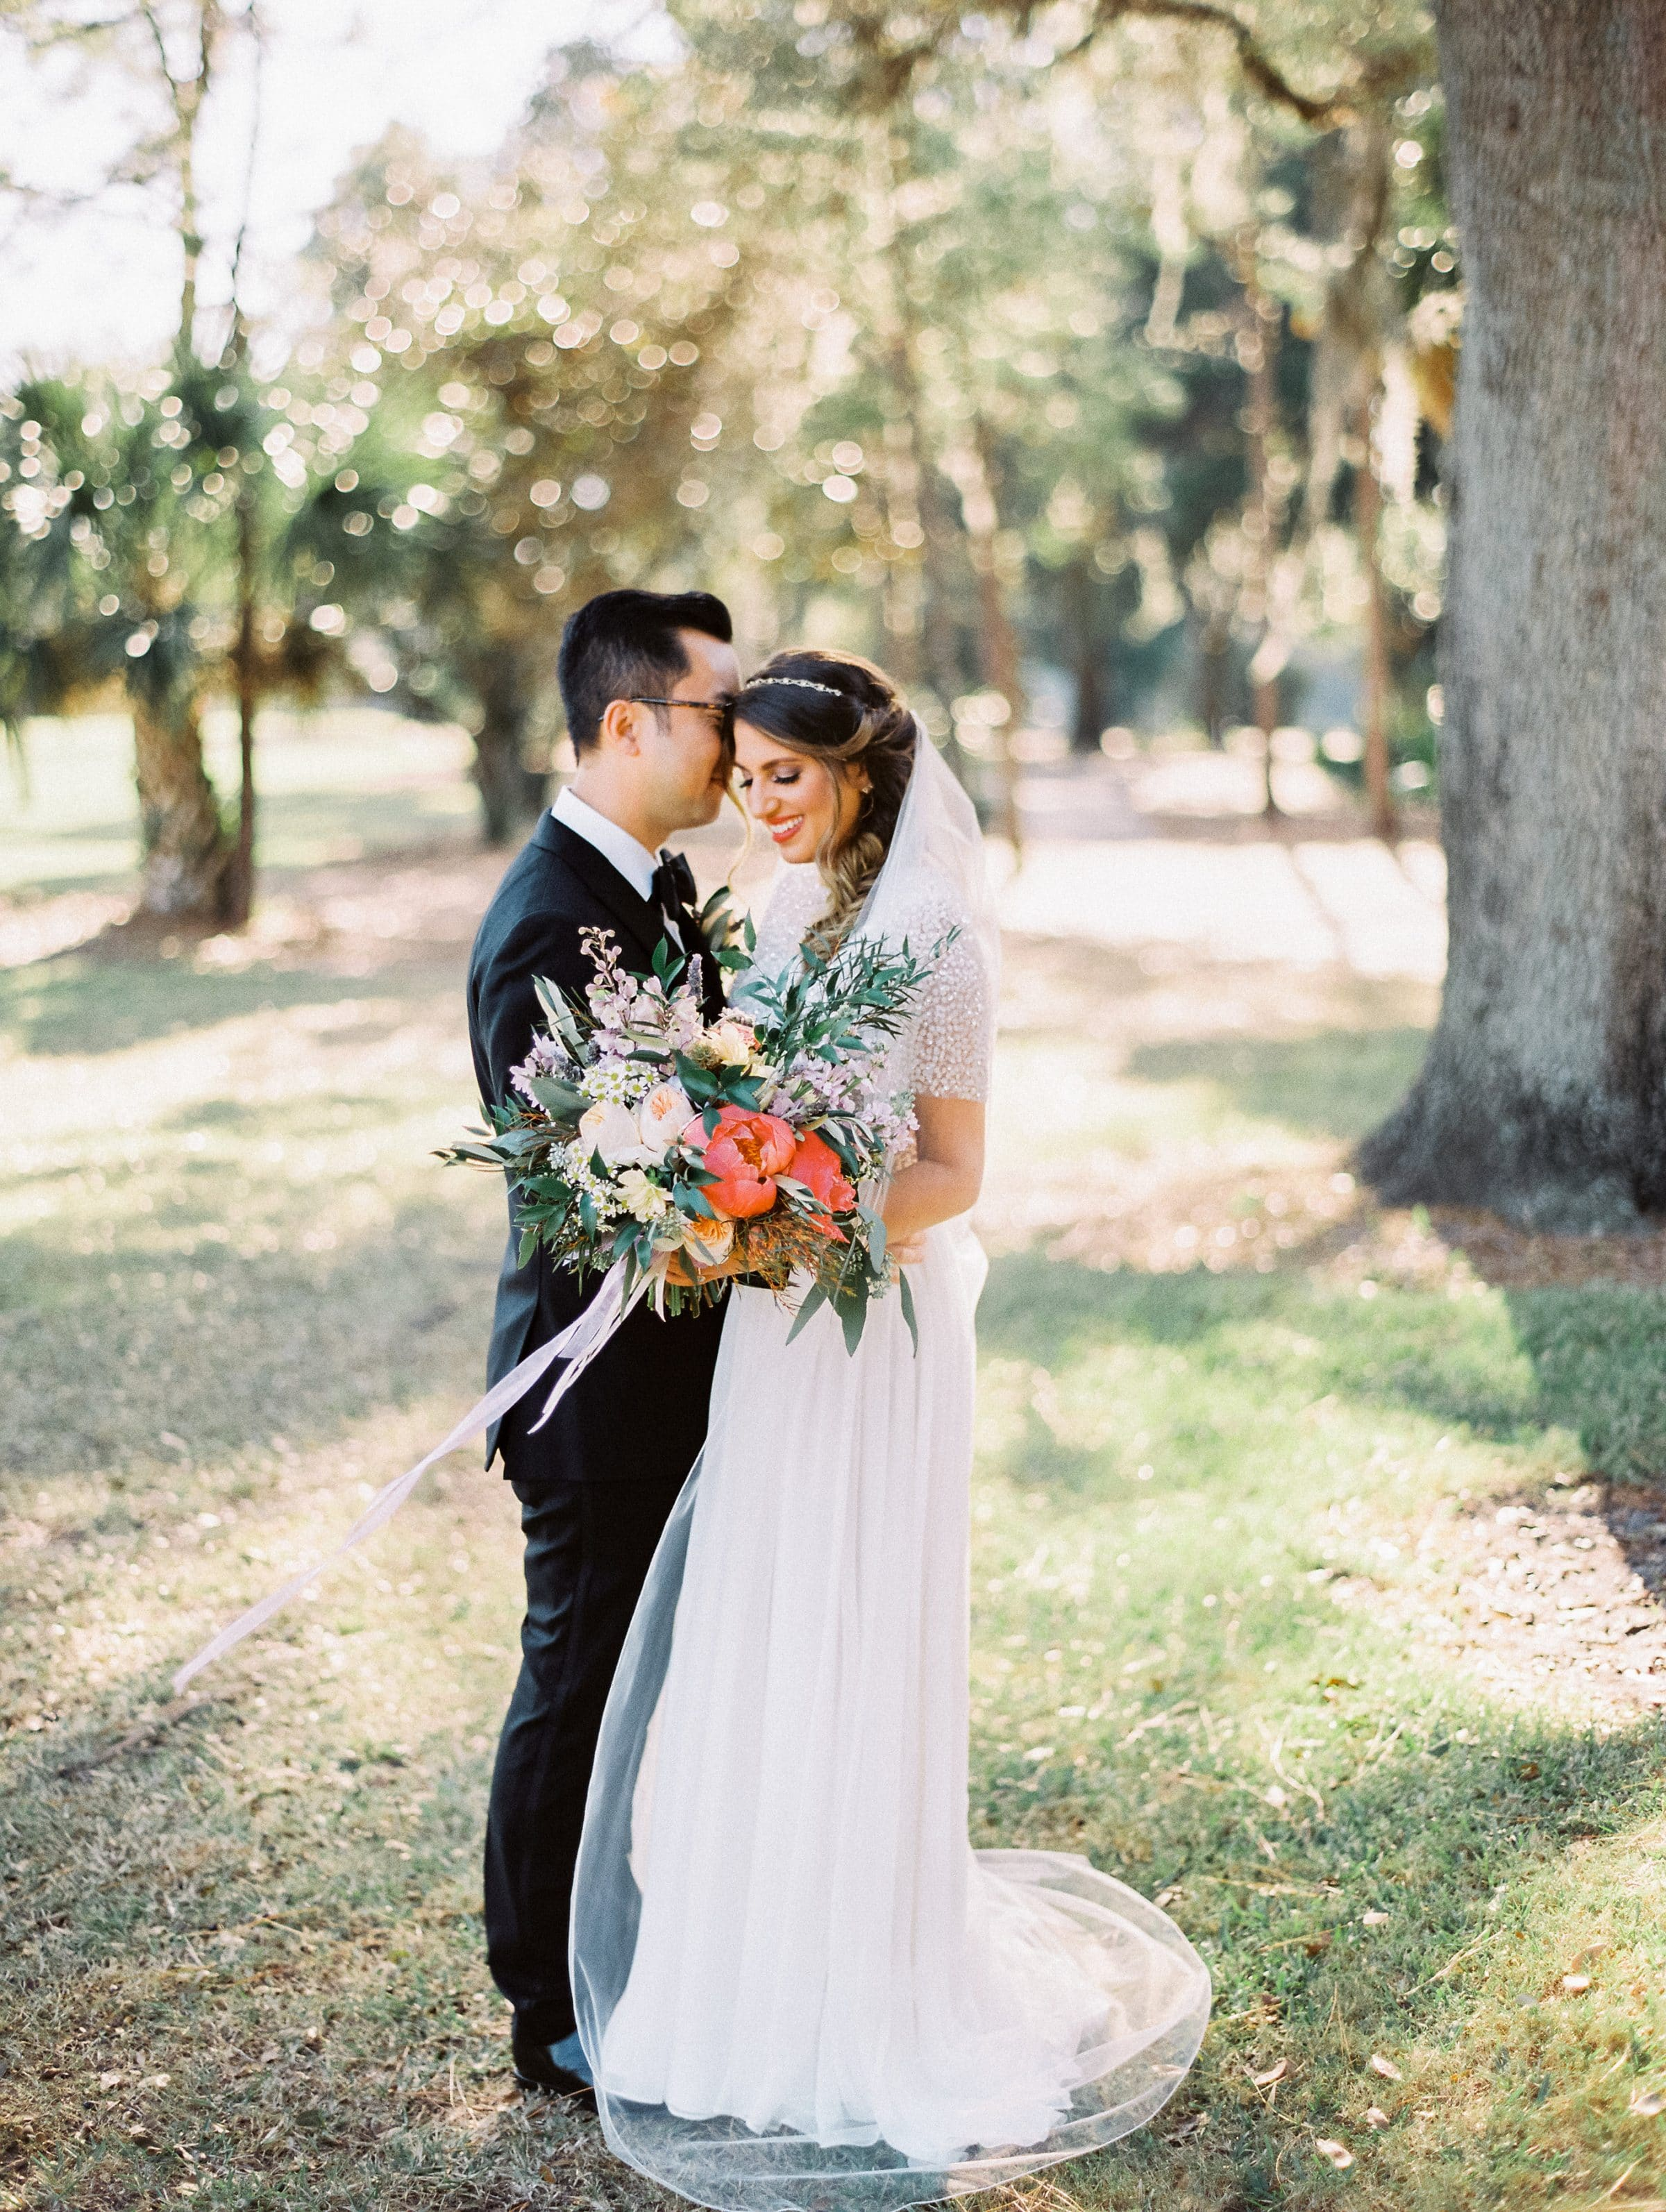 Bride and Groom in the Trees holding Show Stopping Wedding Bouquet